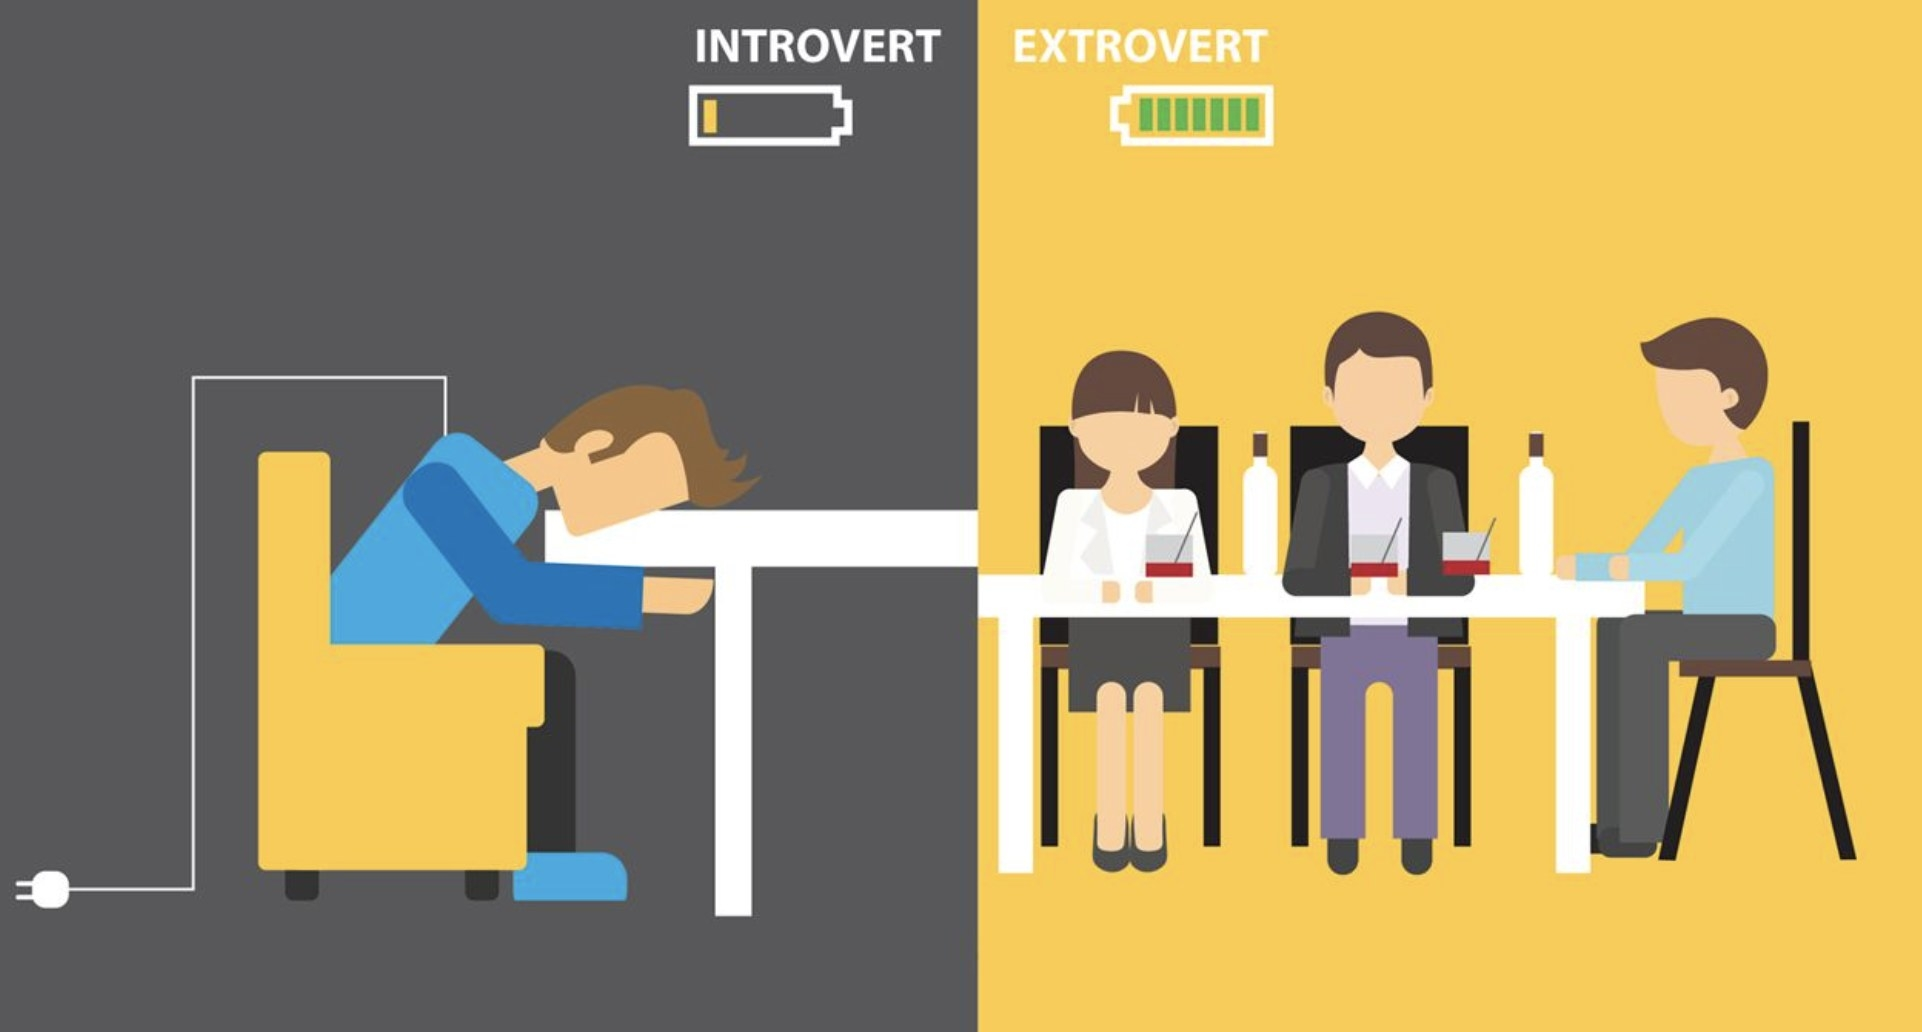 An introvert in a meeting with a low battery sign above them, next to extroverts who have a full battery sign above them.